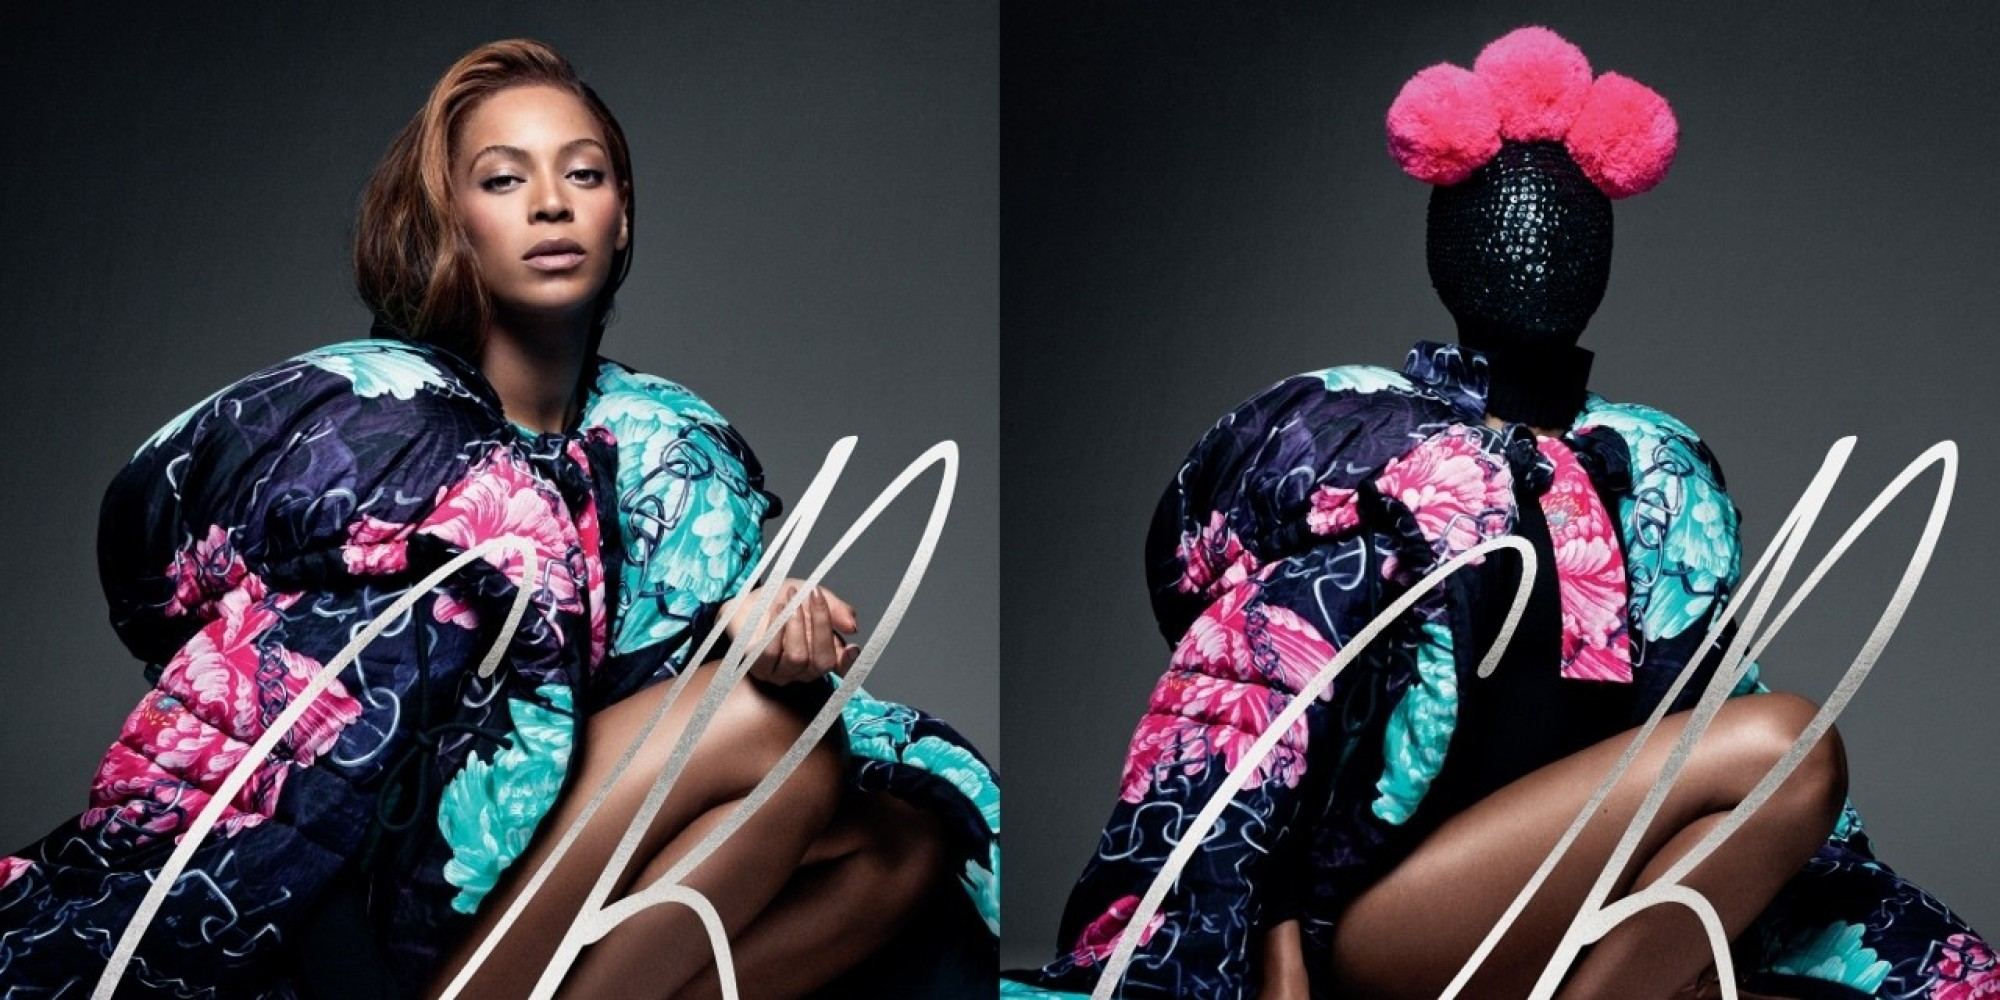 Fashion Book Cover Zip ~ Beyonce covers cr fashion book holds a chanel surfbort